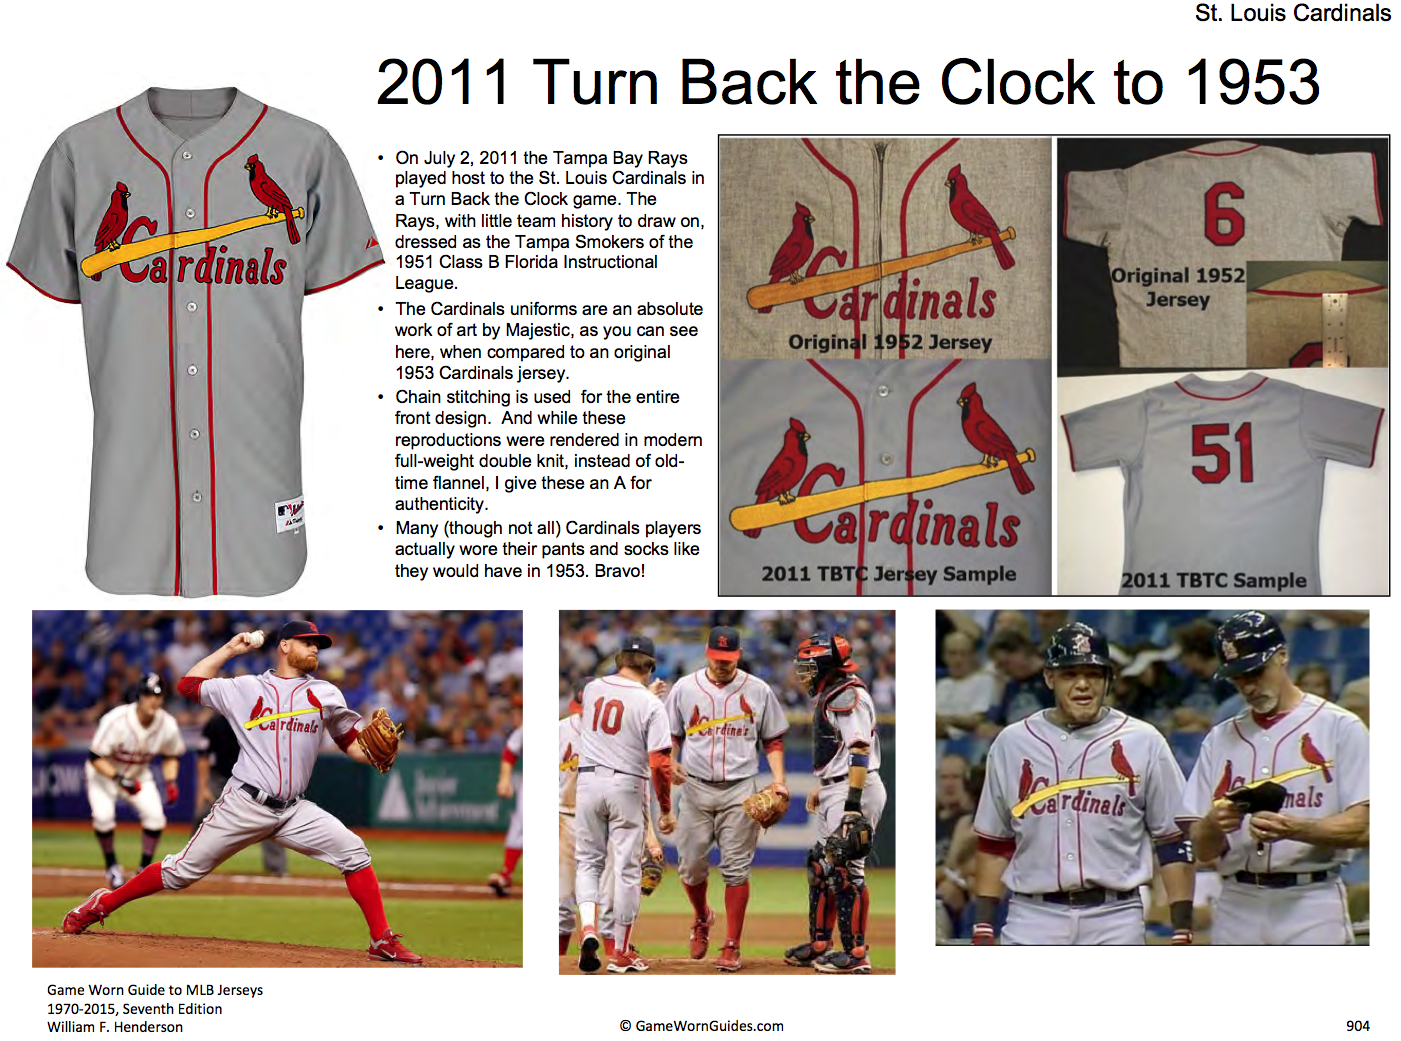 c9f1b3eb57f Last year the Cards wore 1929 throwbacks featuring a seldom-seen tailoring  format  a four-button henley pullover. Very nice cap